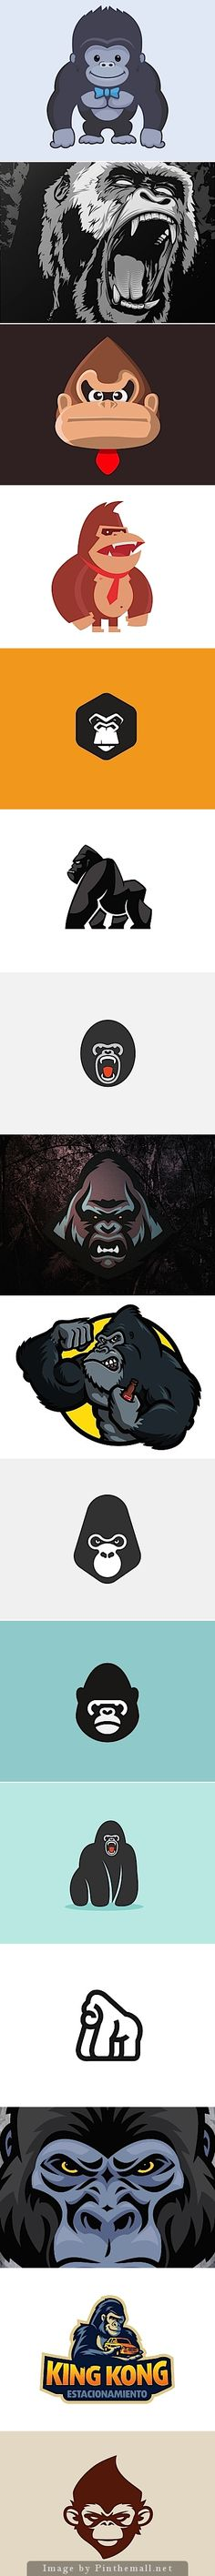 Gorilla illustration collection to show the various styles of vector…